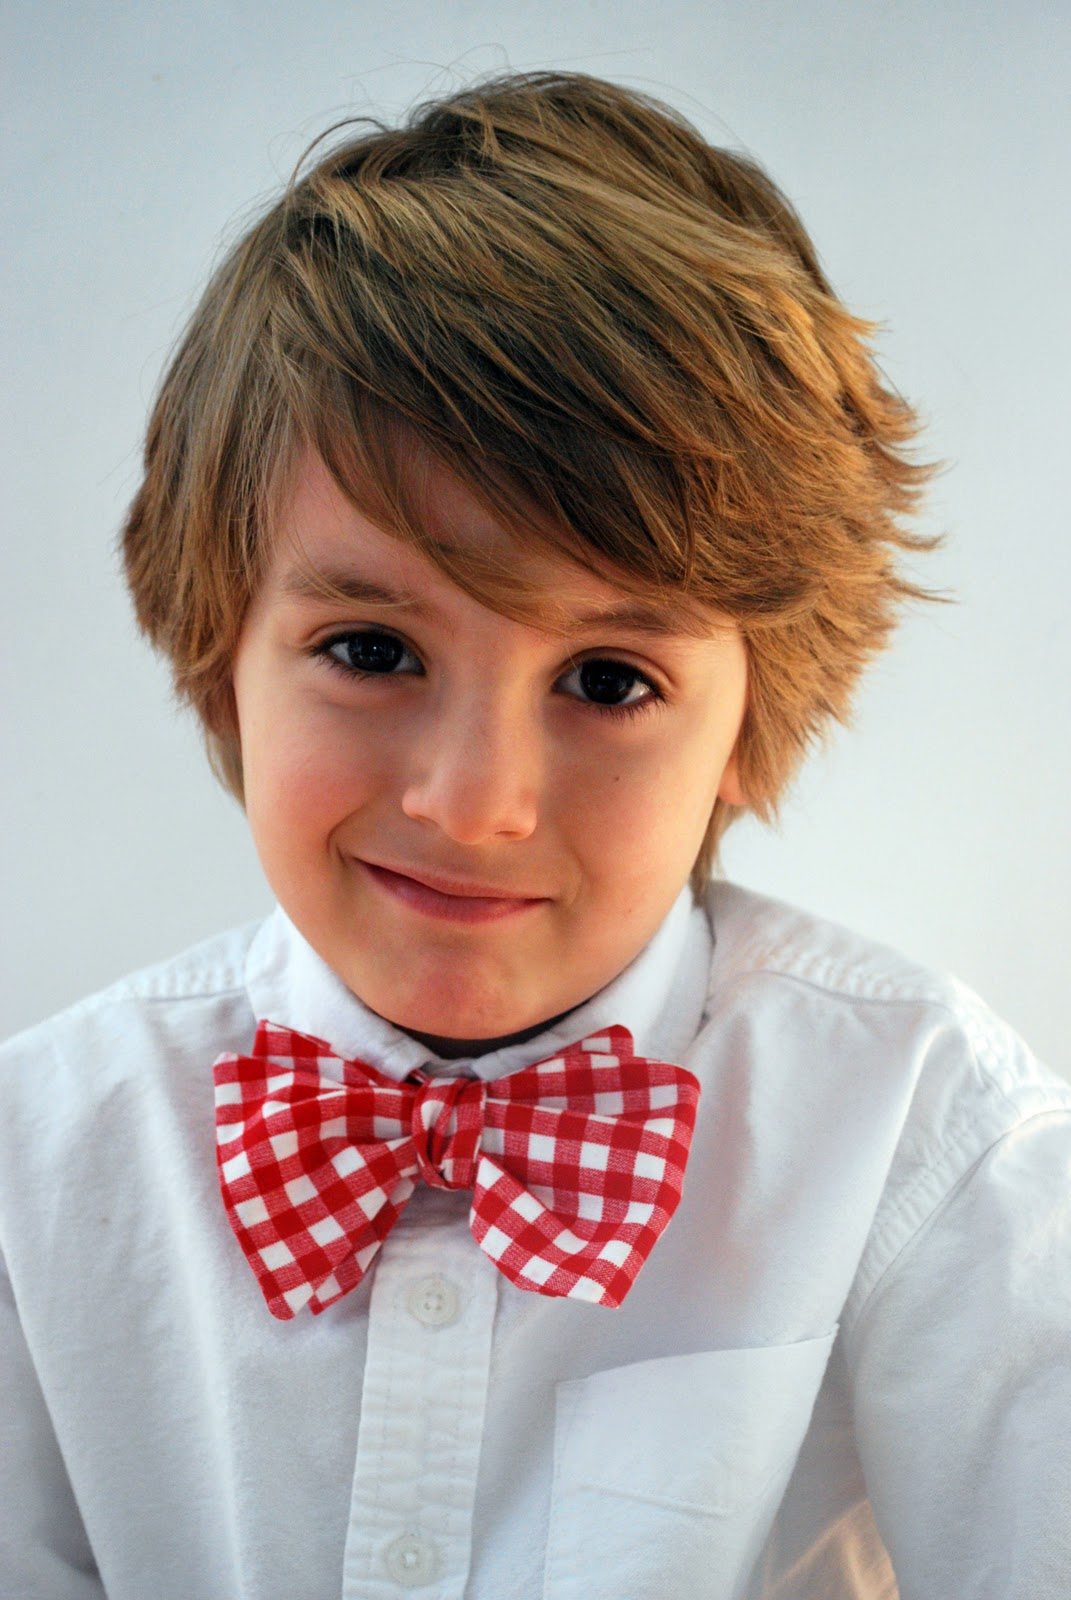 Plain Blood Red Boys Bow Tie from Ties Planet UK  |Bow Ties For Boys